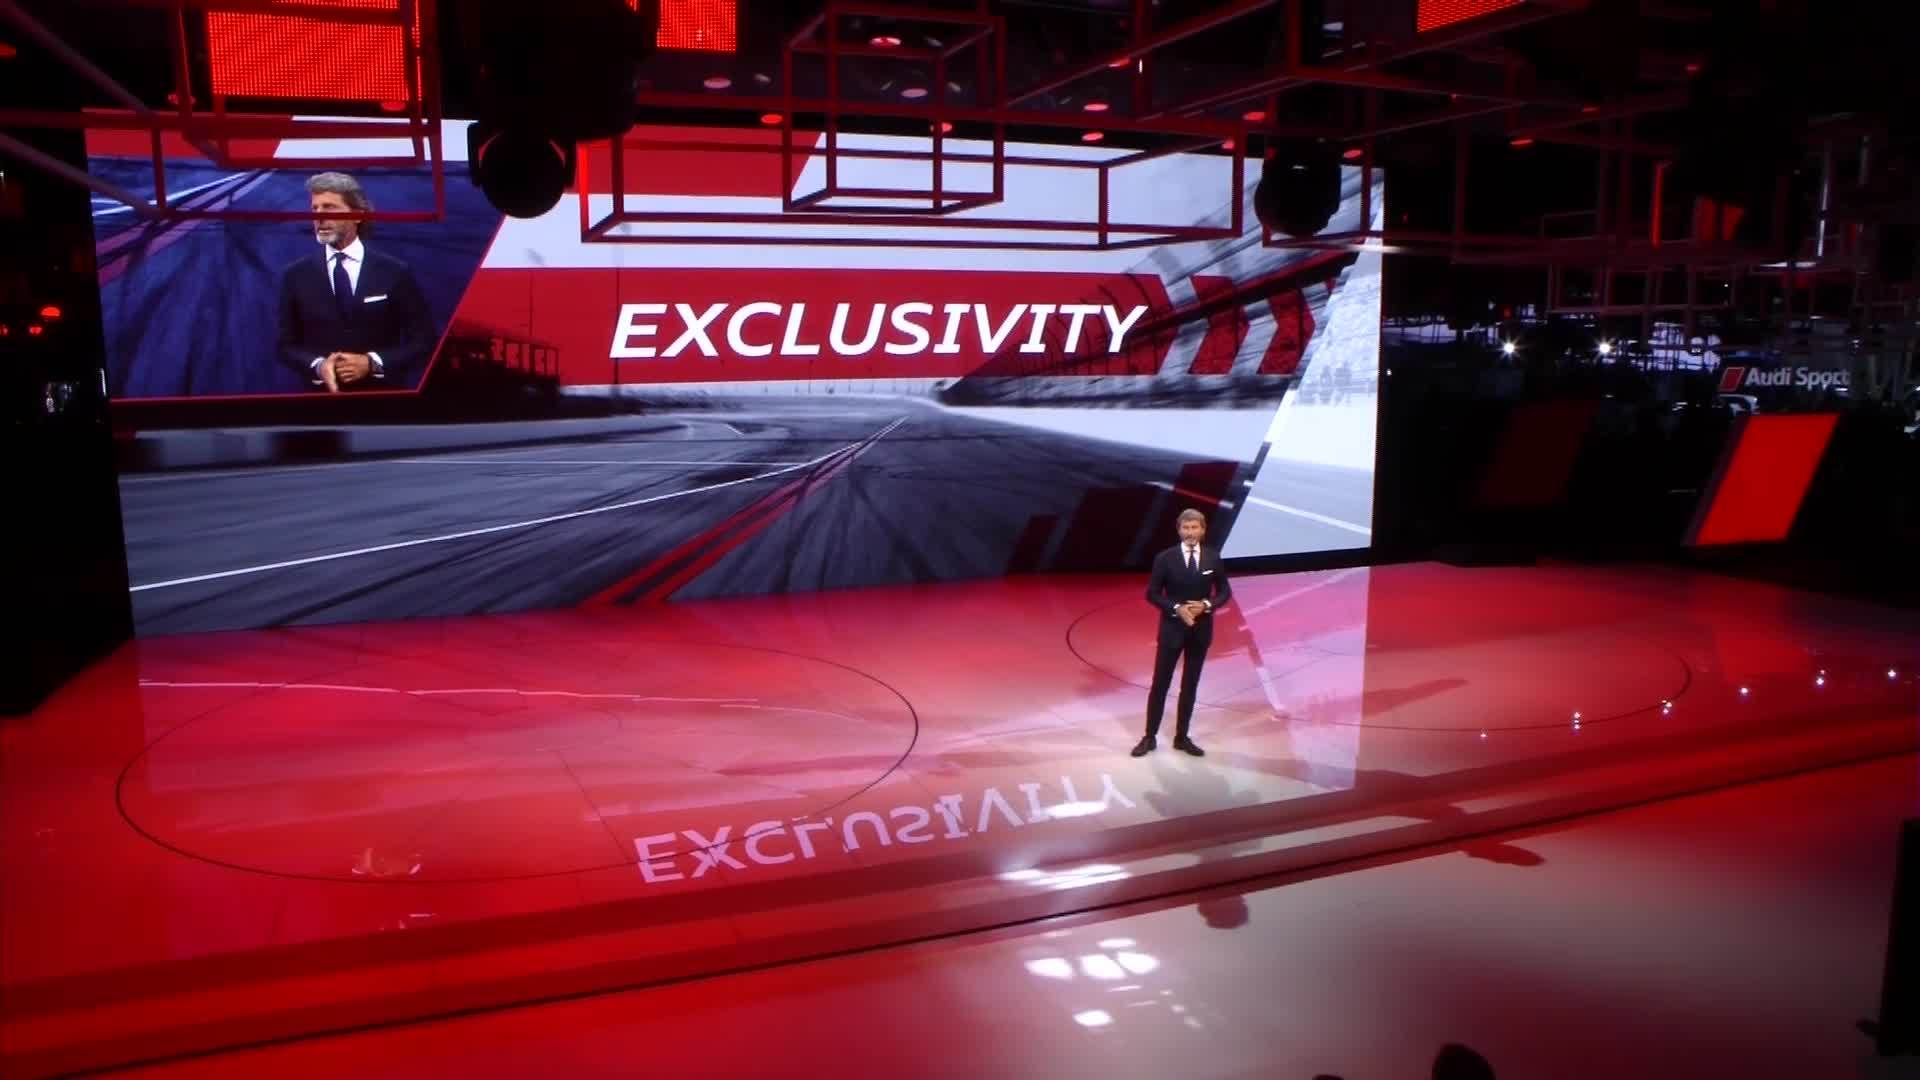 Audi Sport at the Paris Motor Show - The press conference